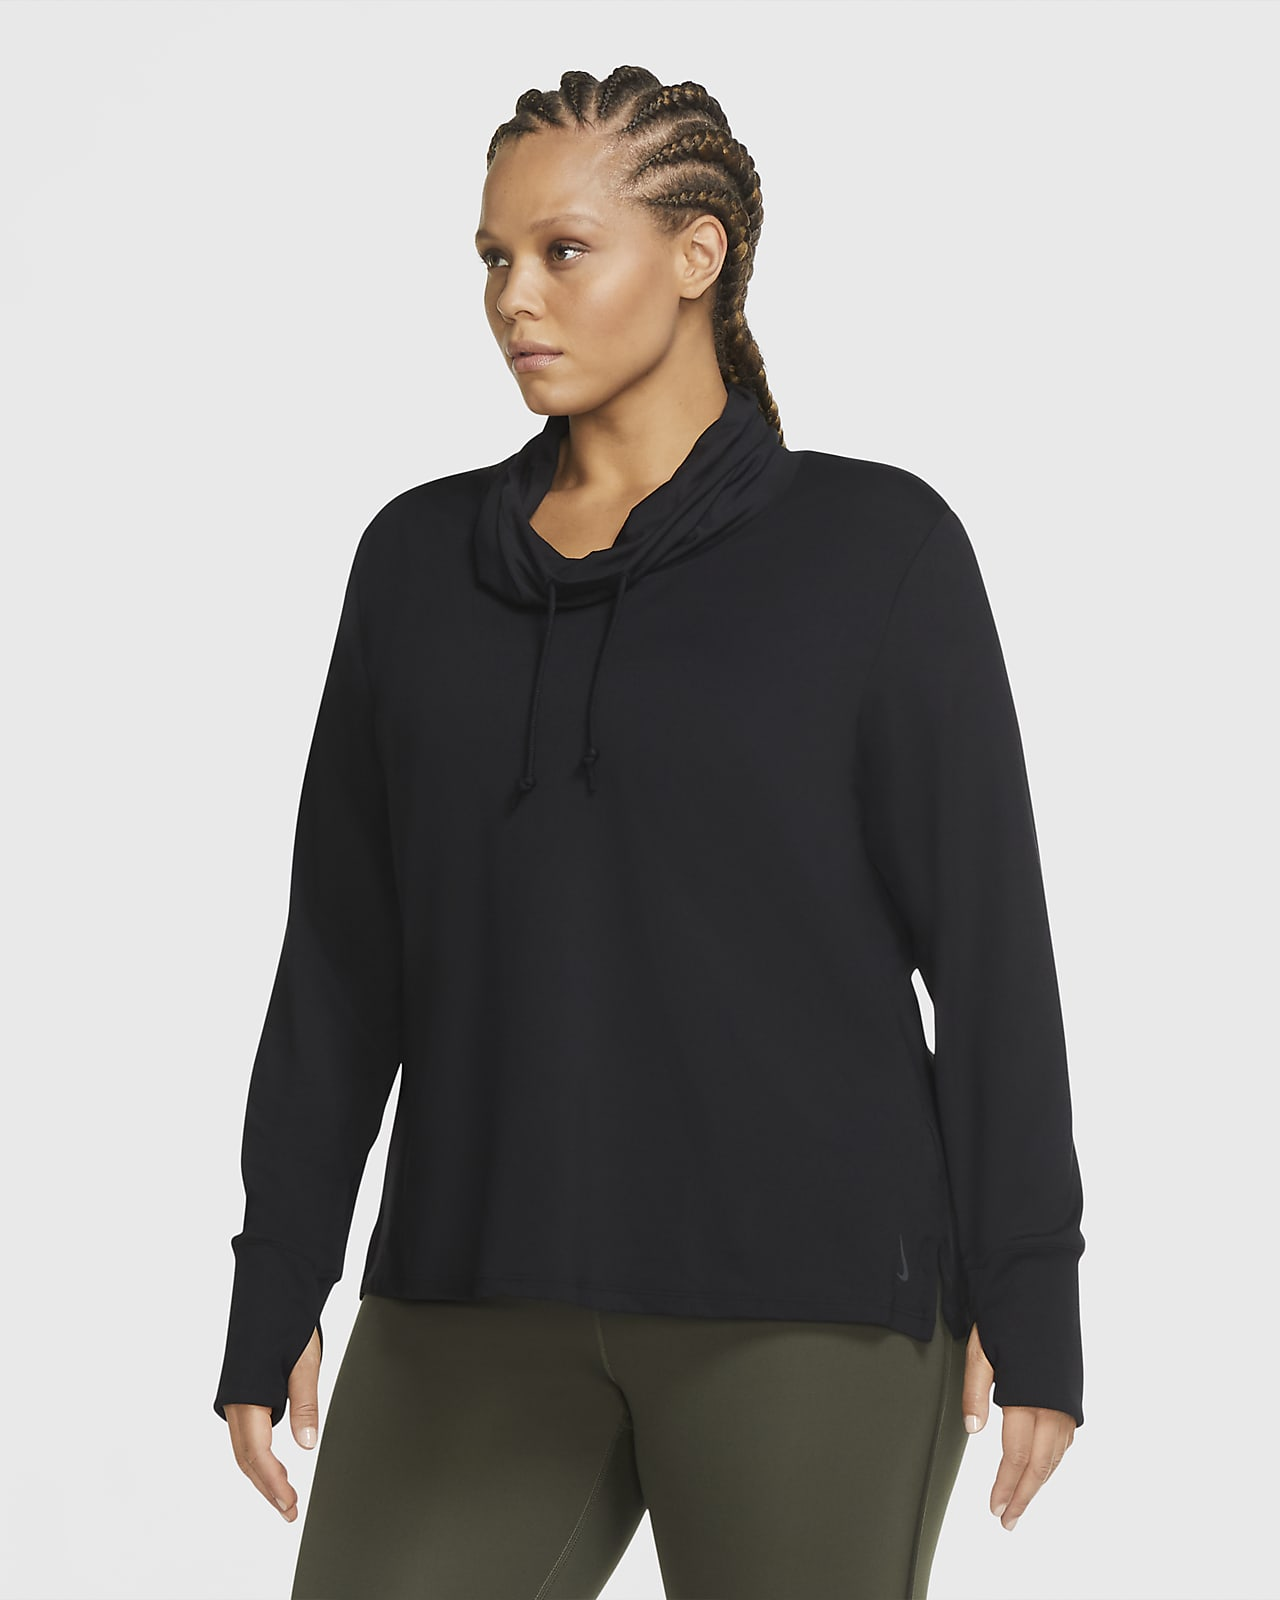 Nike Yoga Women's Jersey Top (Plus Size)